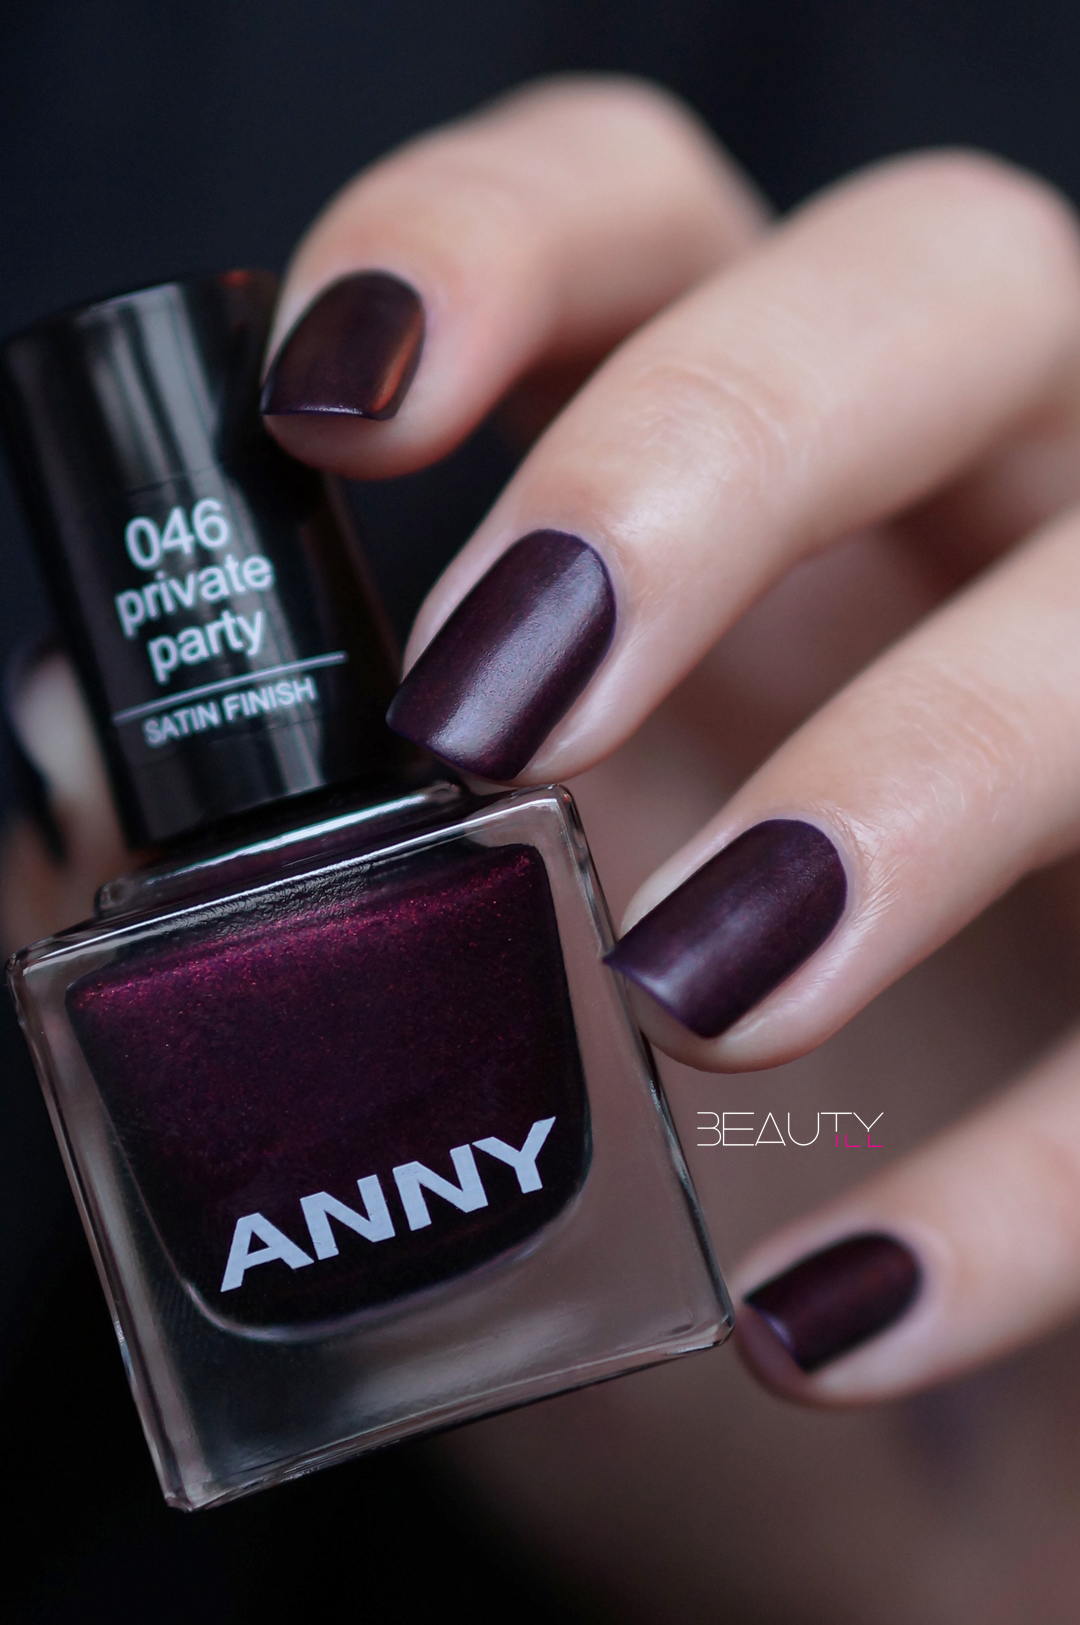 ANNY 046 Private Party | NOTD